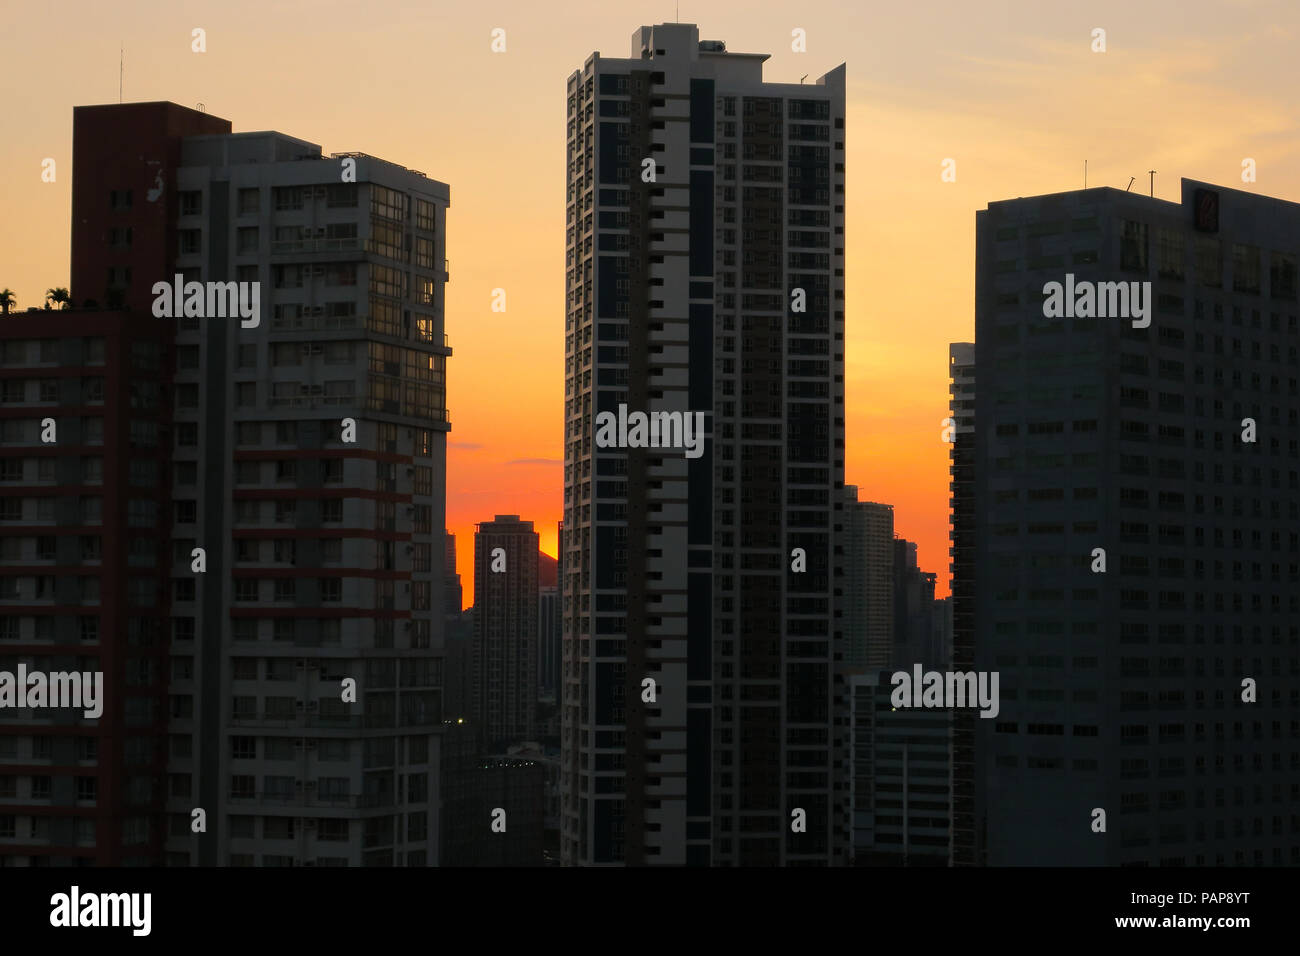 Tall buildings detail with stunning orange pollution sunset in metro Manila, from Kapitolyo, Pasig - Philippines - Stock Image